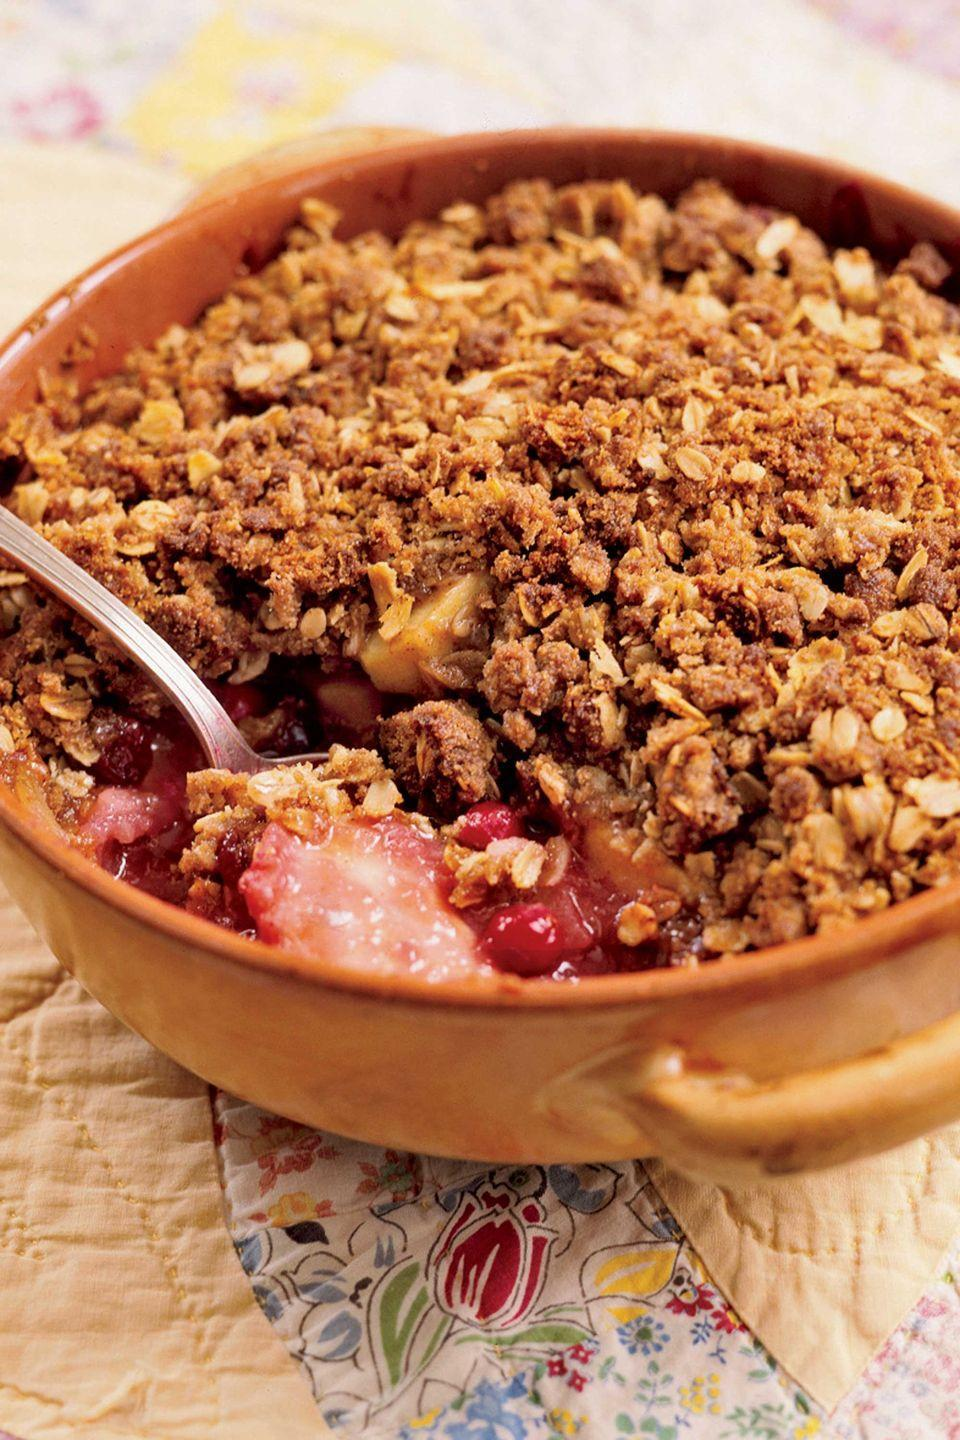 "<p>Try this simple and satisfying dessert with all the best flavors of the season.</p><p><strong><a href=""https://www.countryliving.com/food-drinks/recipes/a1930/cranberry-apple-crisp-clv1007/"" rel=""nofollow noopener"" target=""_blank"" data-ylk=""slk:Get the recipe"" class=""link rapid-noclick-resp"">Get the recipe</a>.</strong></p>"